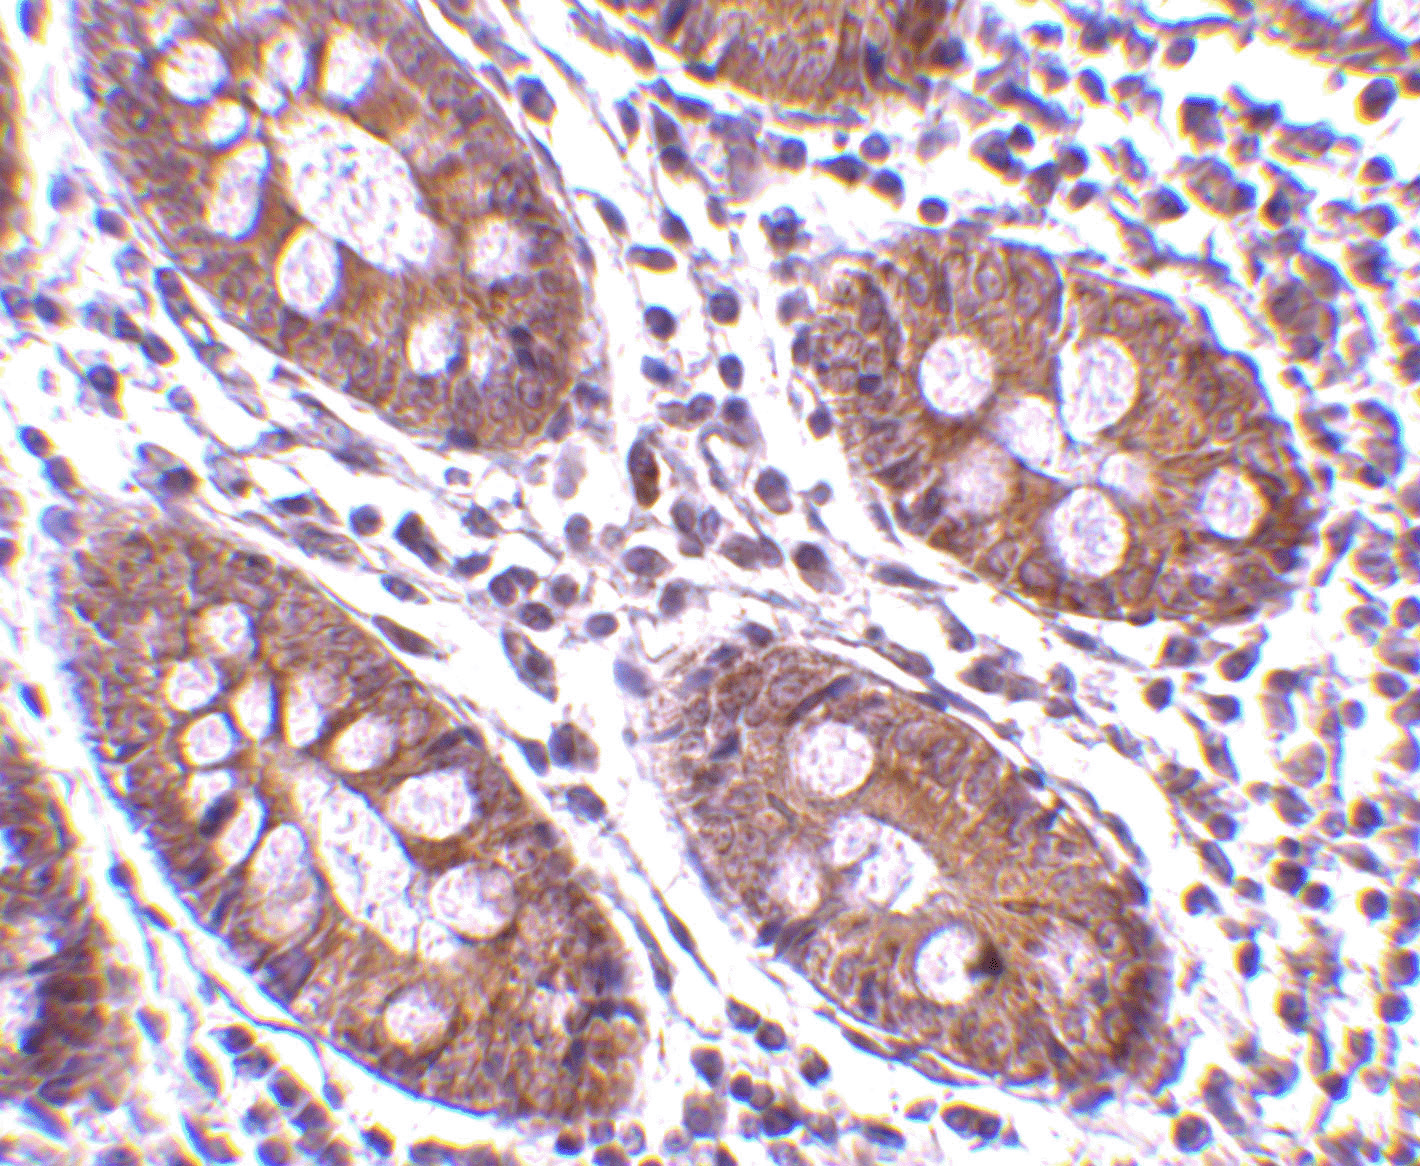 CDKN2A Antibody (OAPB00526) in human colon cells using Immunohistochemistry